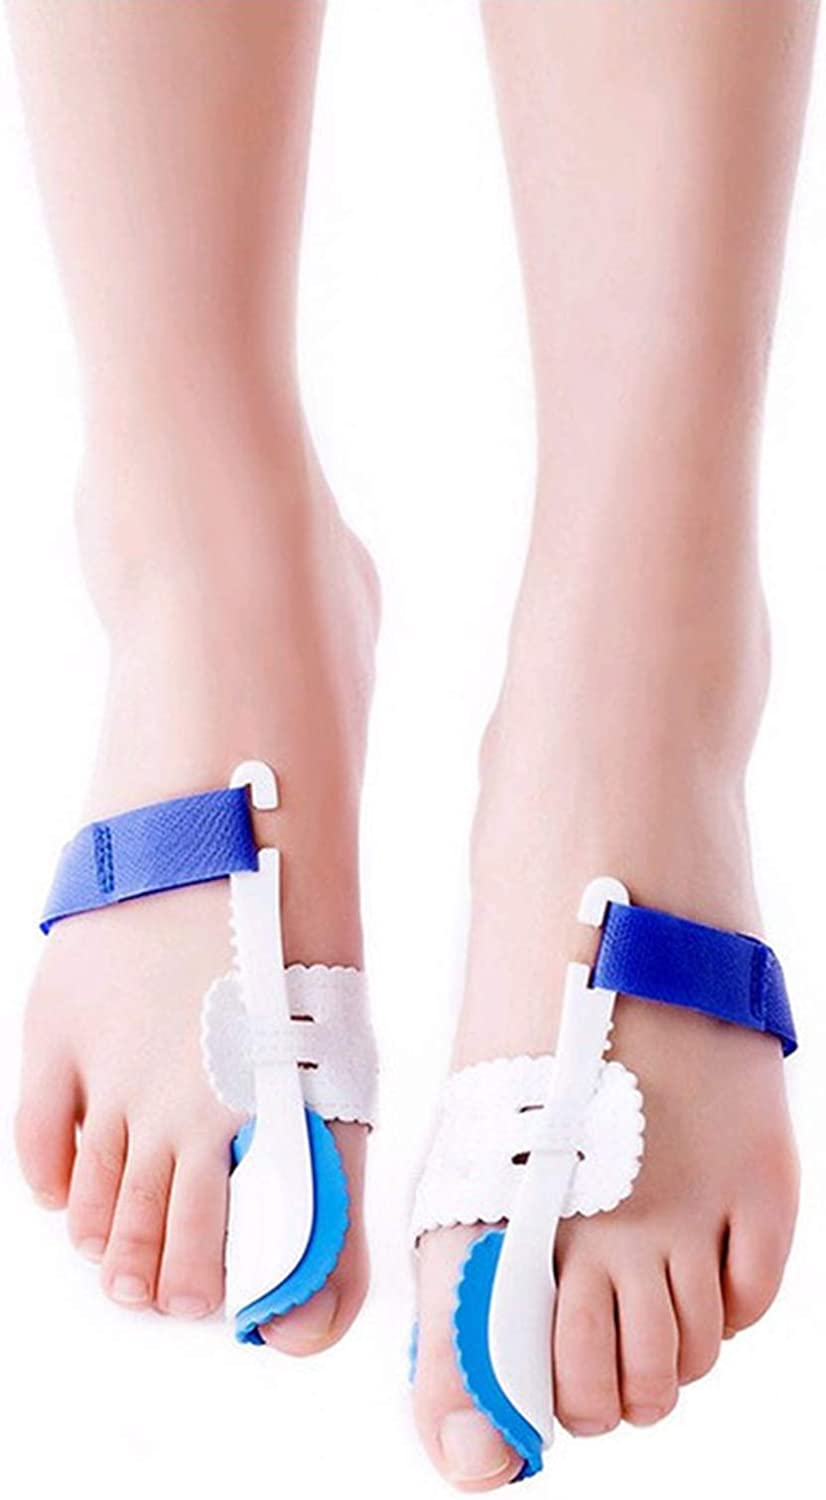 HiiBaby Bunion Splint for Bunions B Crooked Free shipping on Year-end annual account posting reviews Toes Alignment